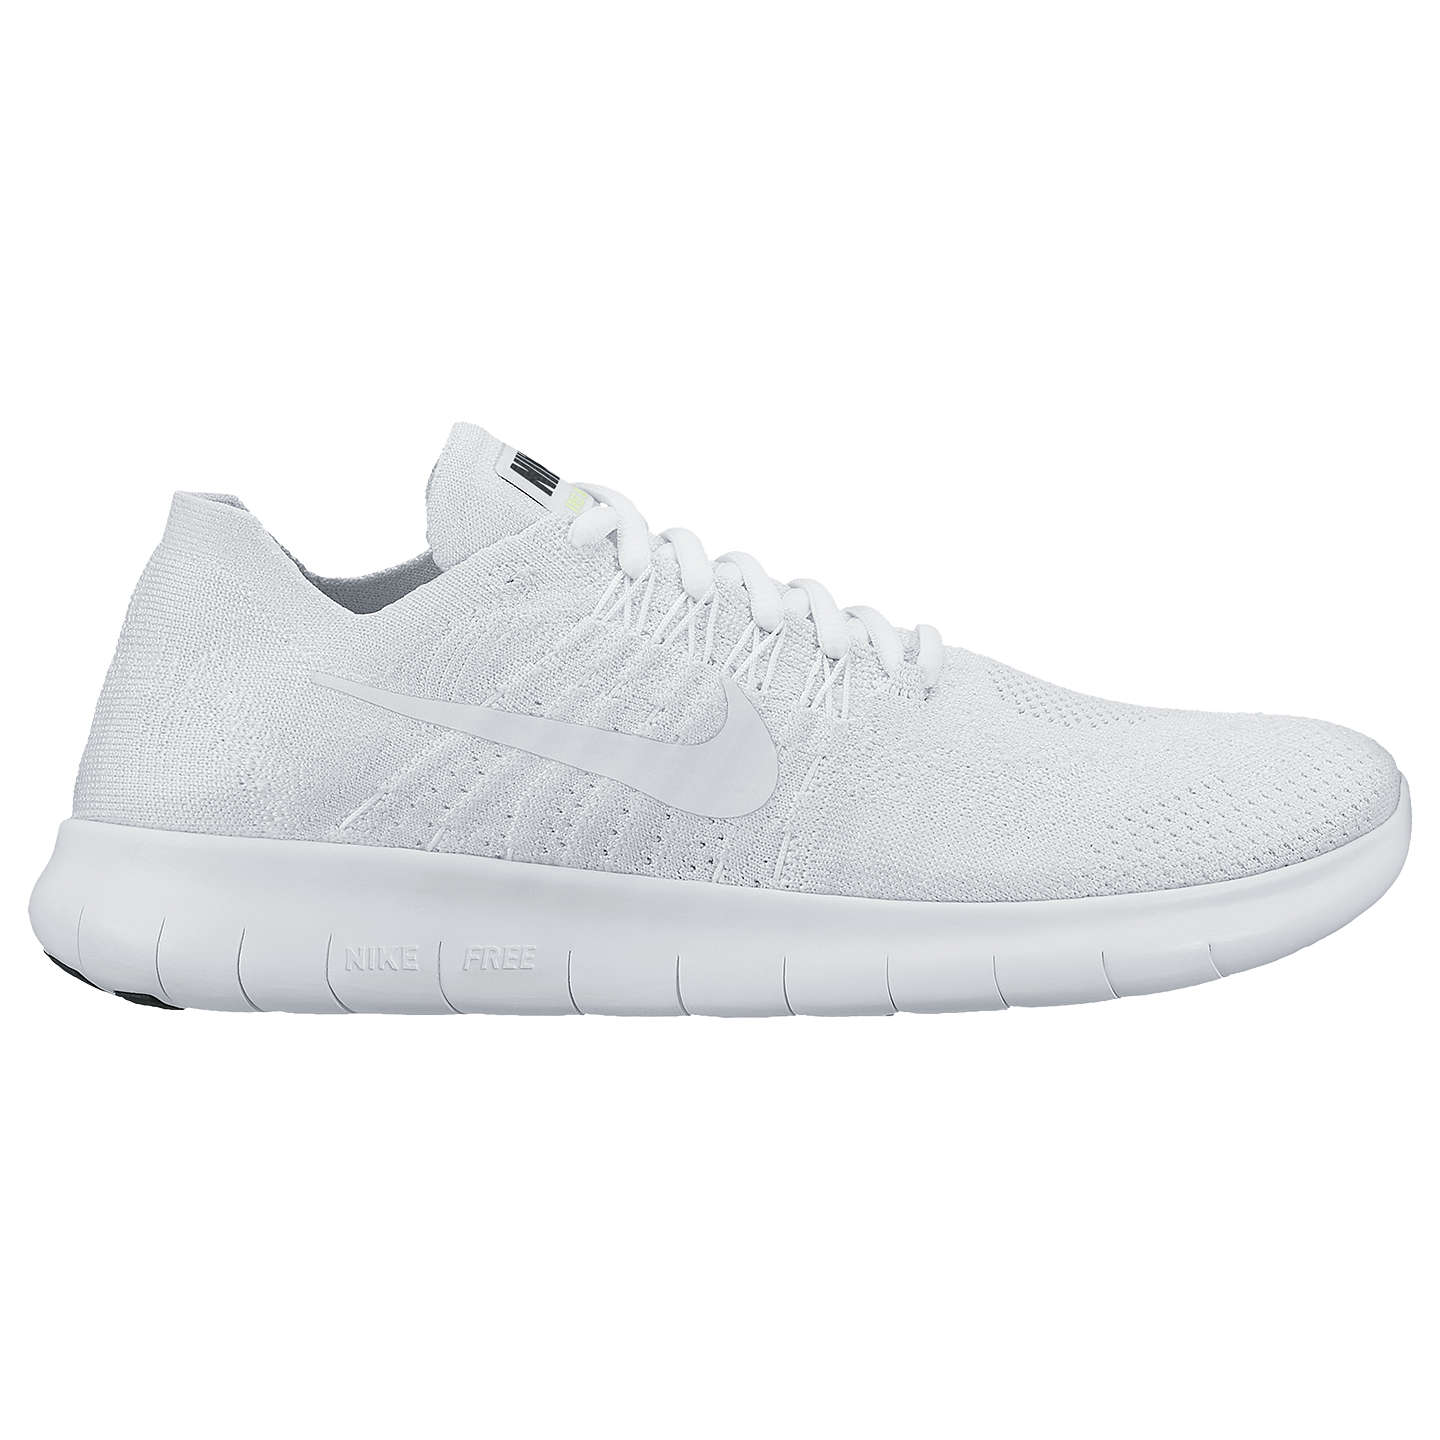 nike free flyknit price philippines rechargeable fans